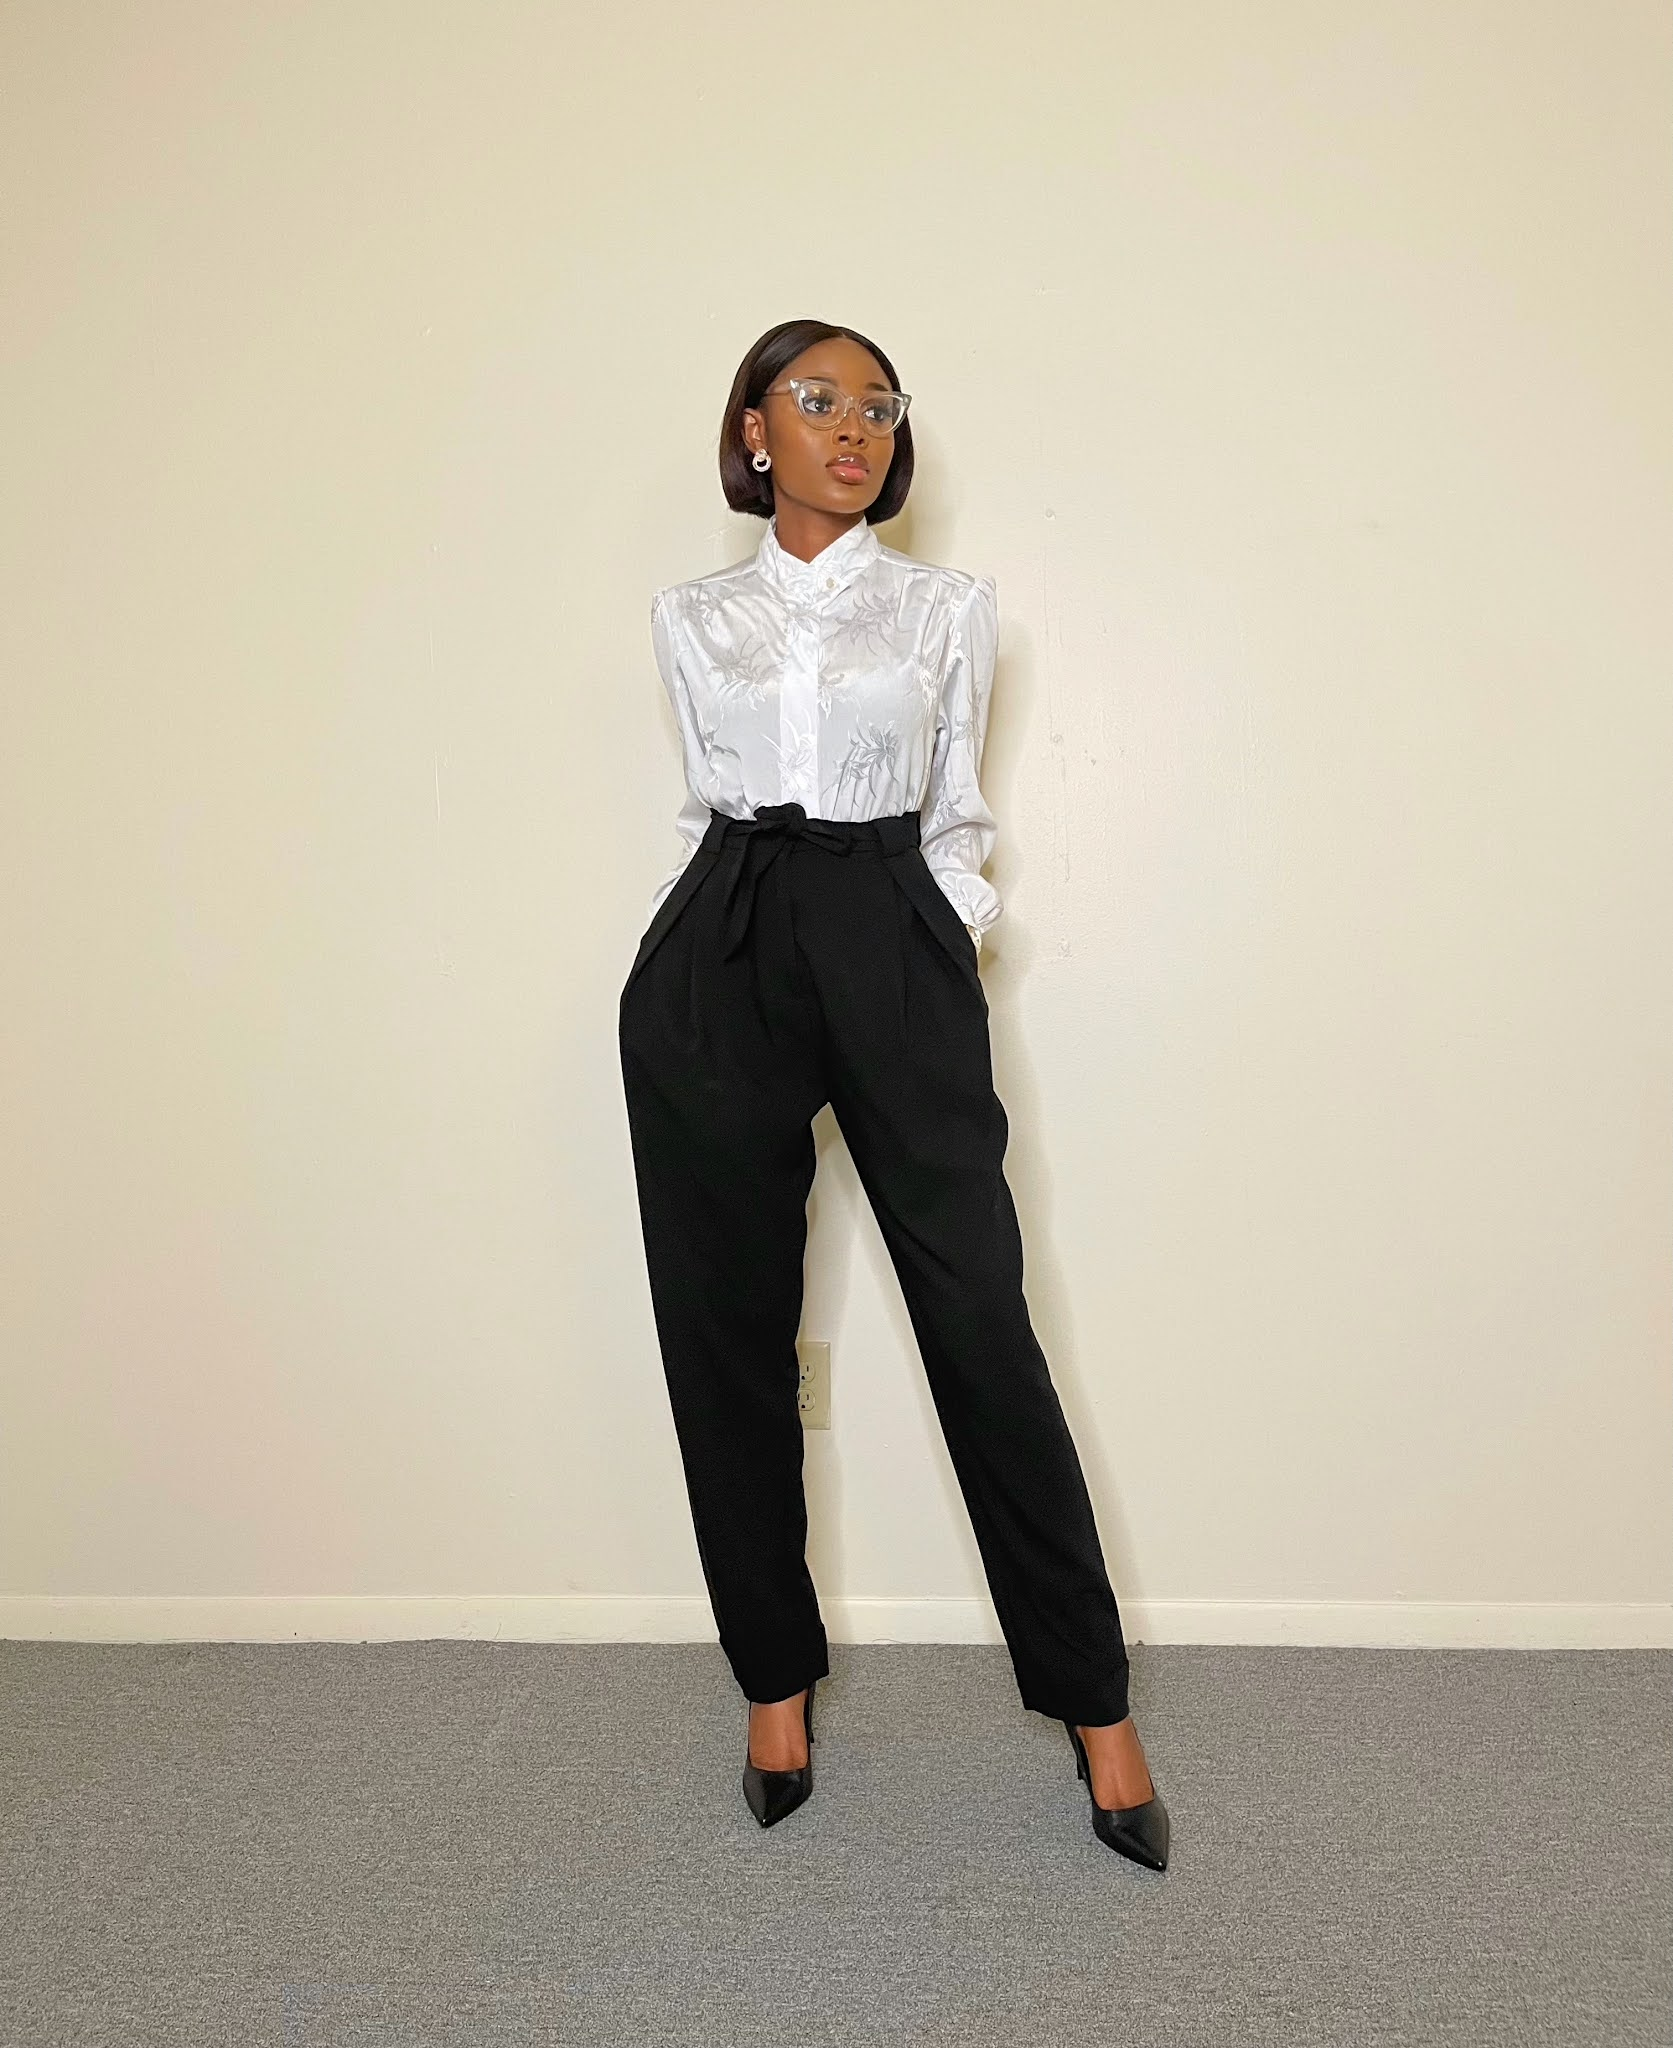 How to wear monochrome outfit to work